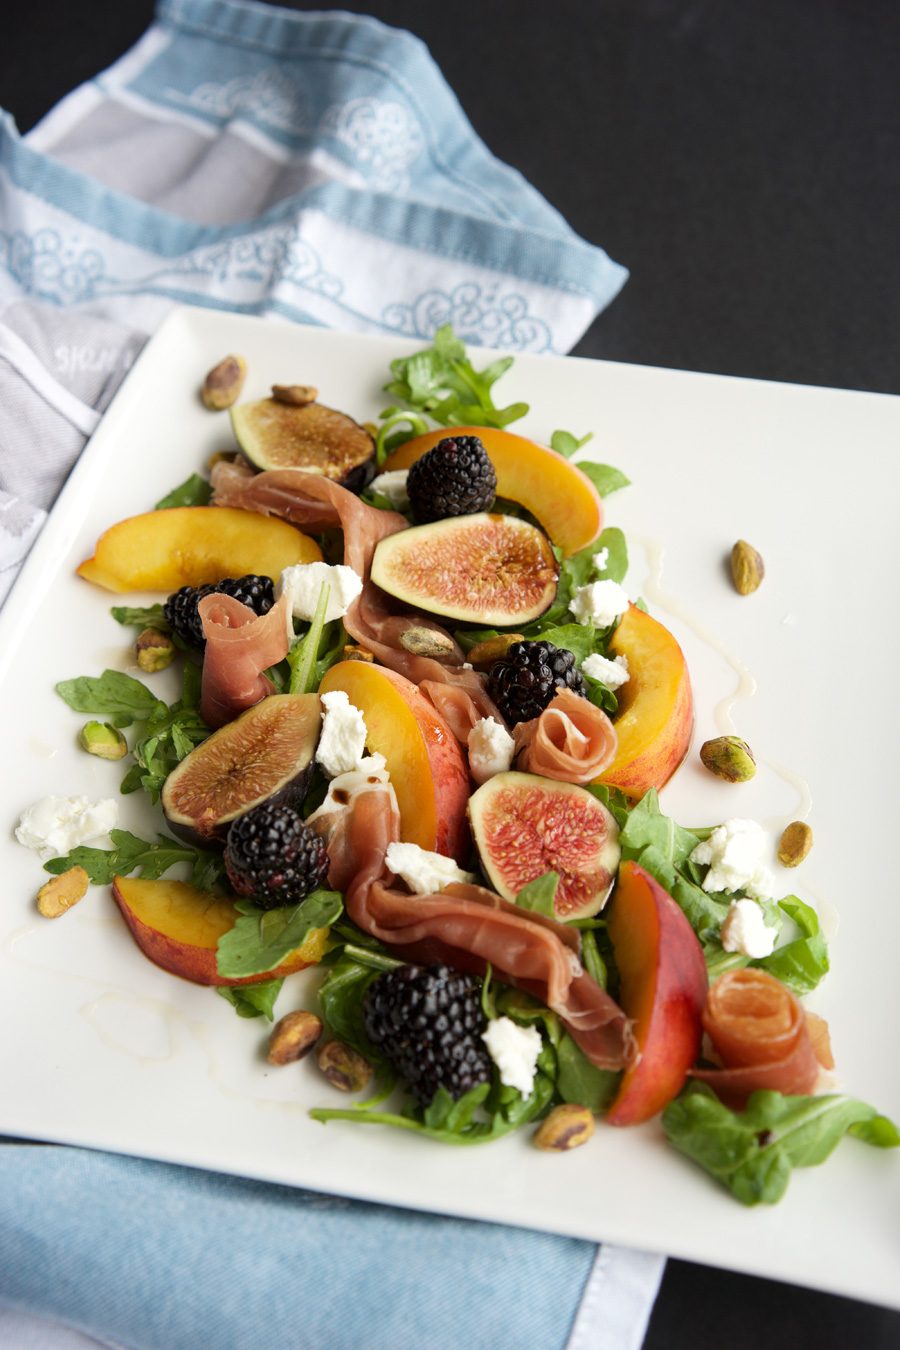 Salad ingredients all put together in a pretty arrangement showcasing the peaches, figs, blackberries, arugula, pistachios and honey drizzle.